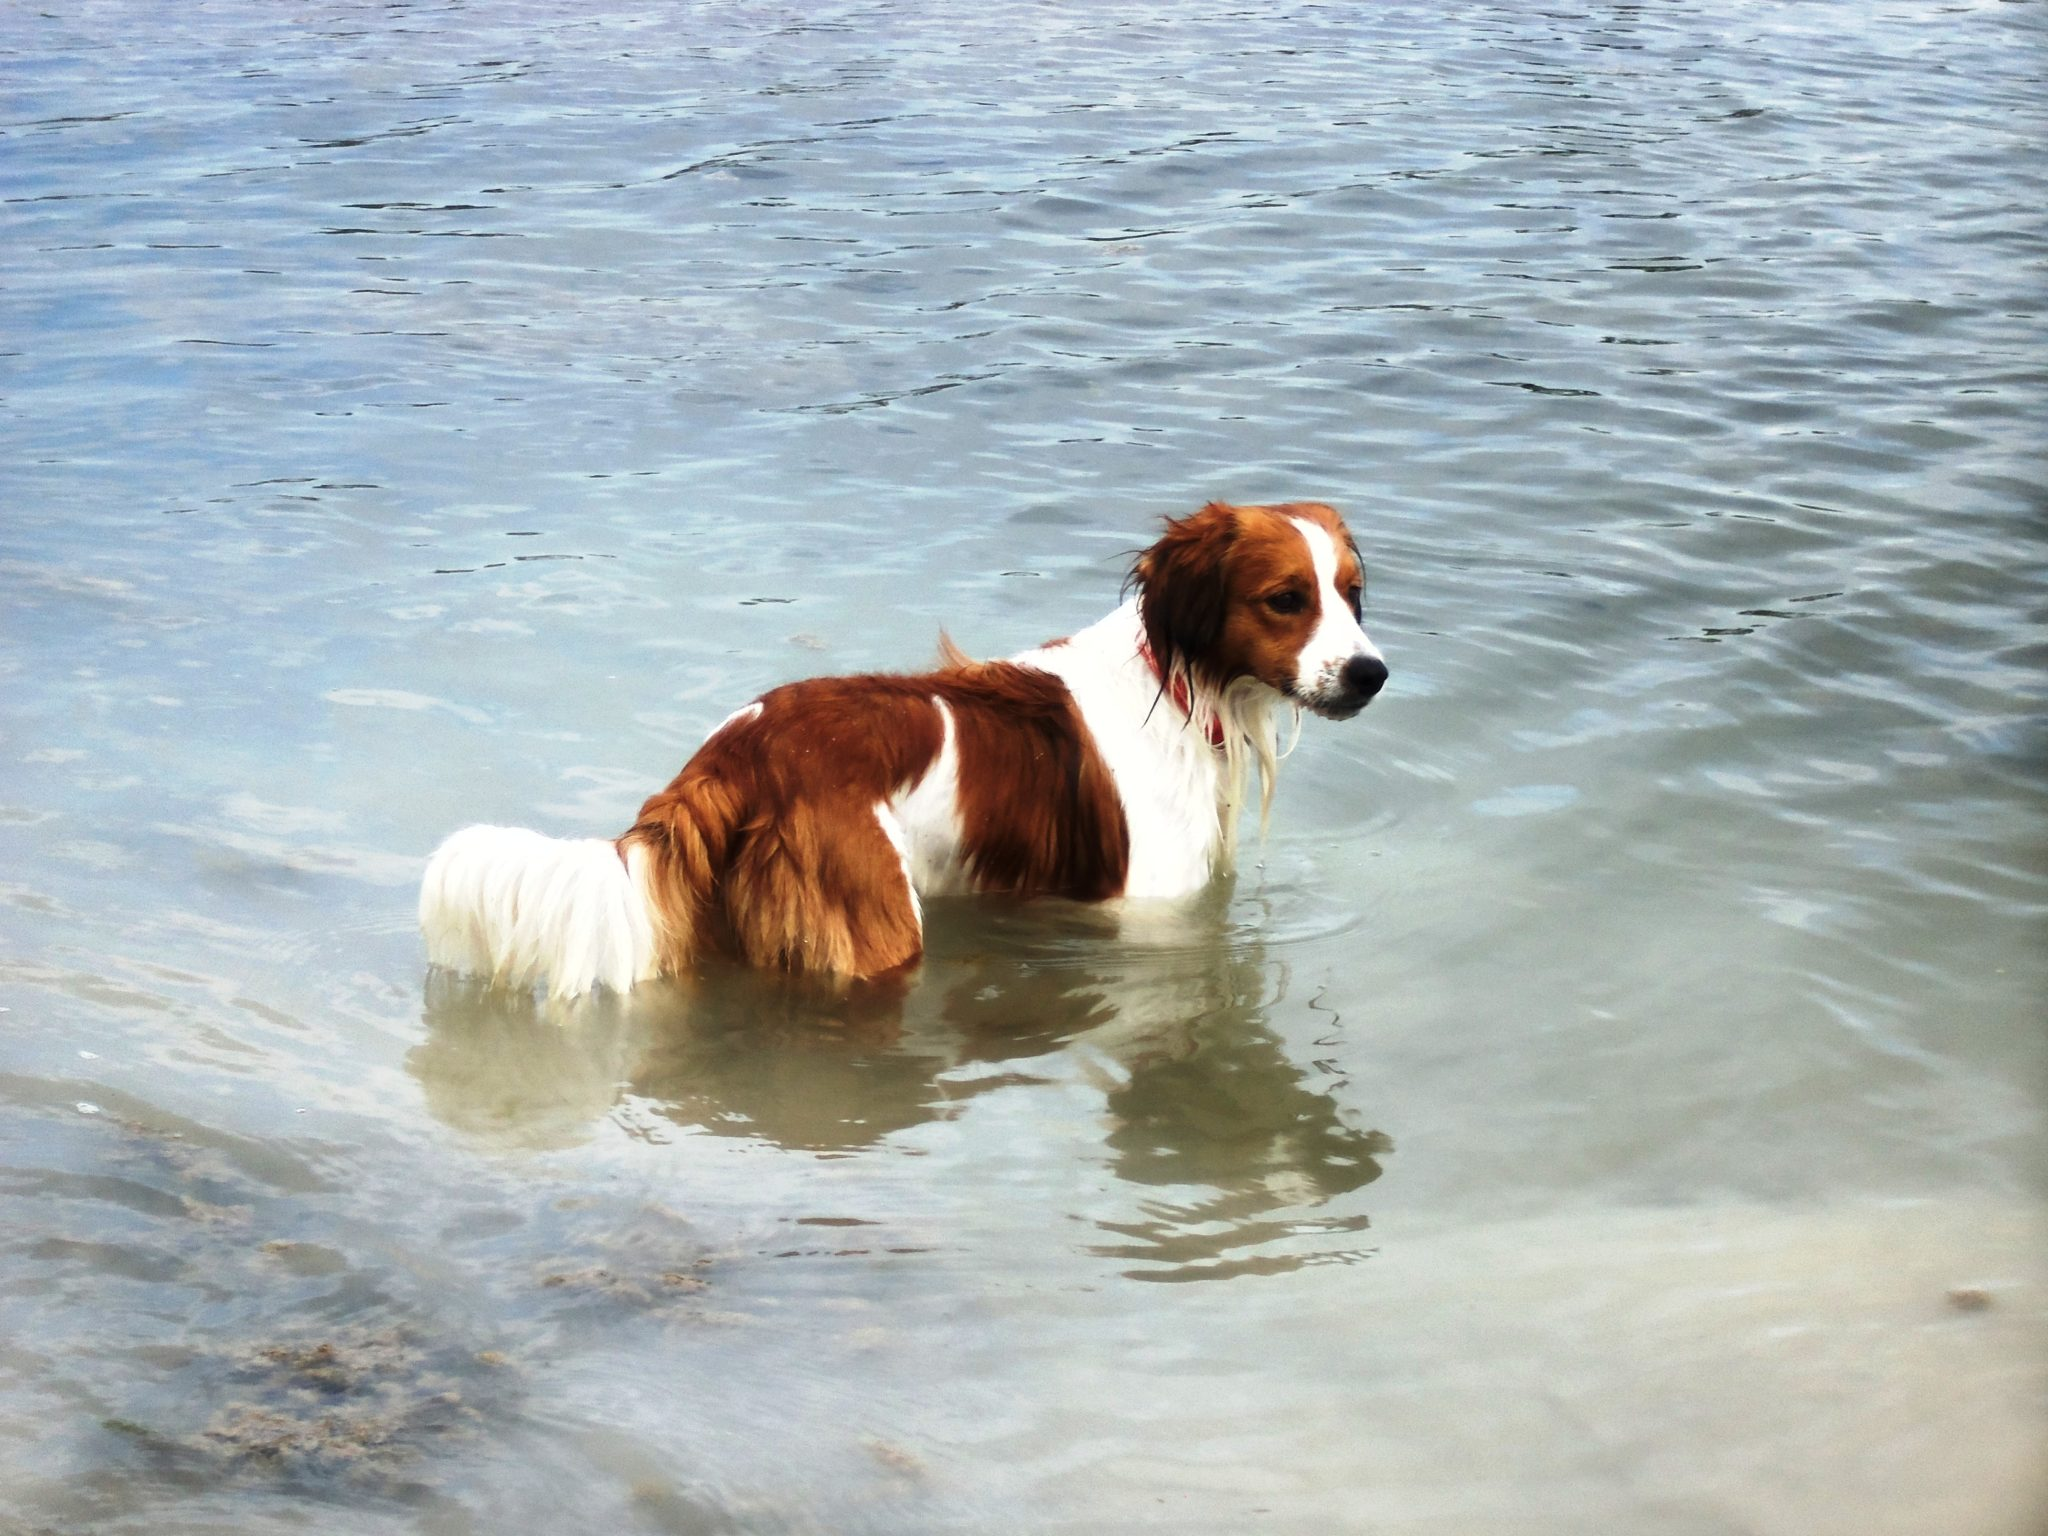 Kooiker in the water